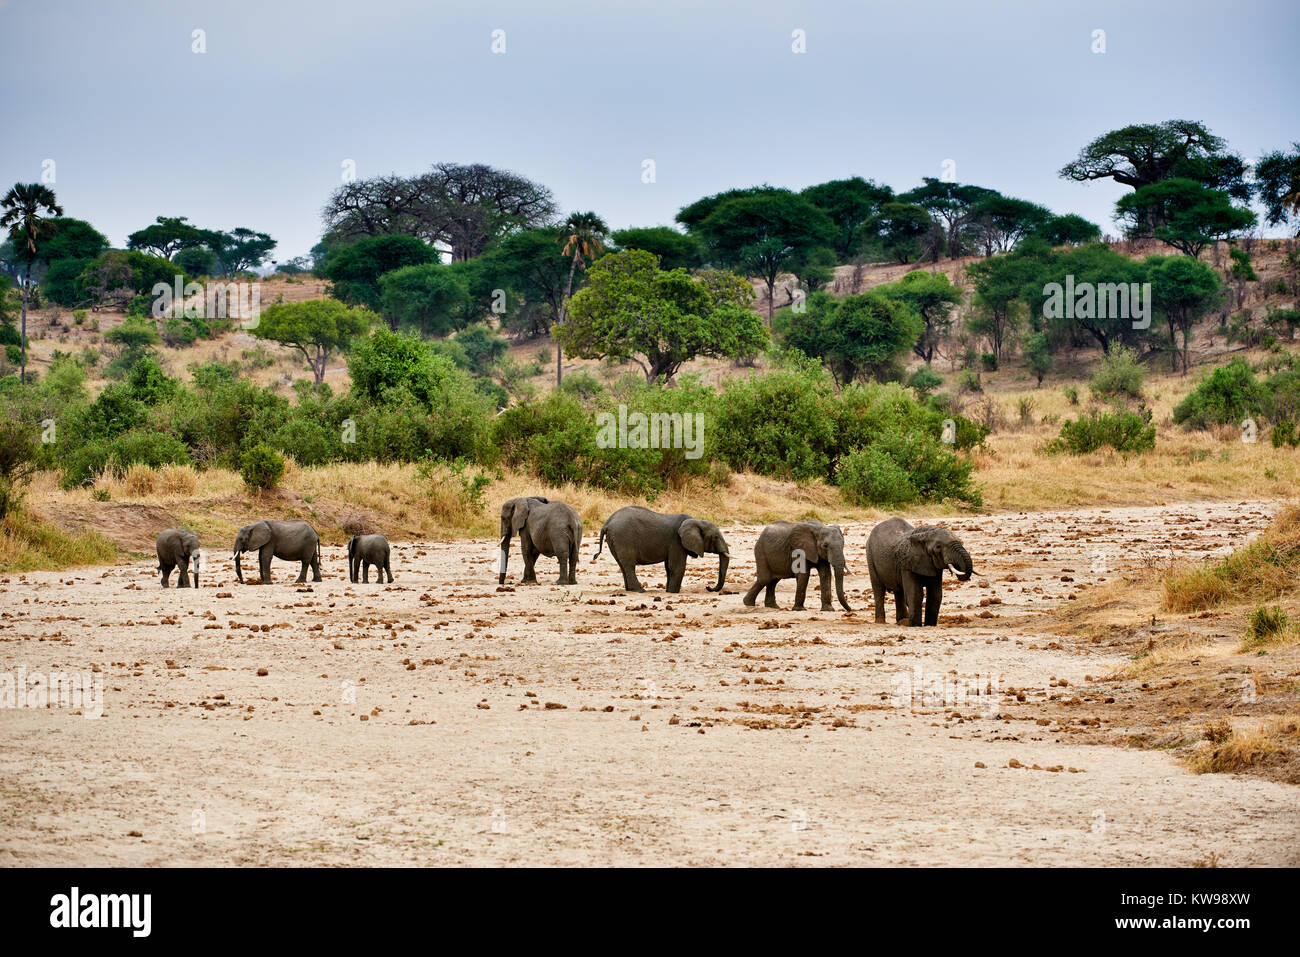 Troupeau d'éléphants d'Afrique Loxodonta africana, Bush, à Tarangire National Park, Tanzania, Photo Stock